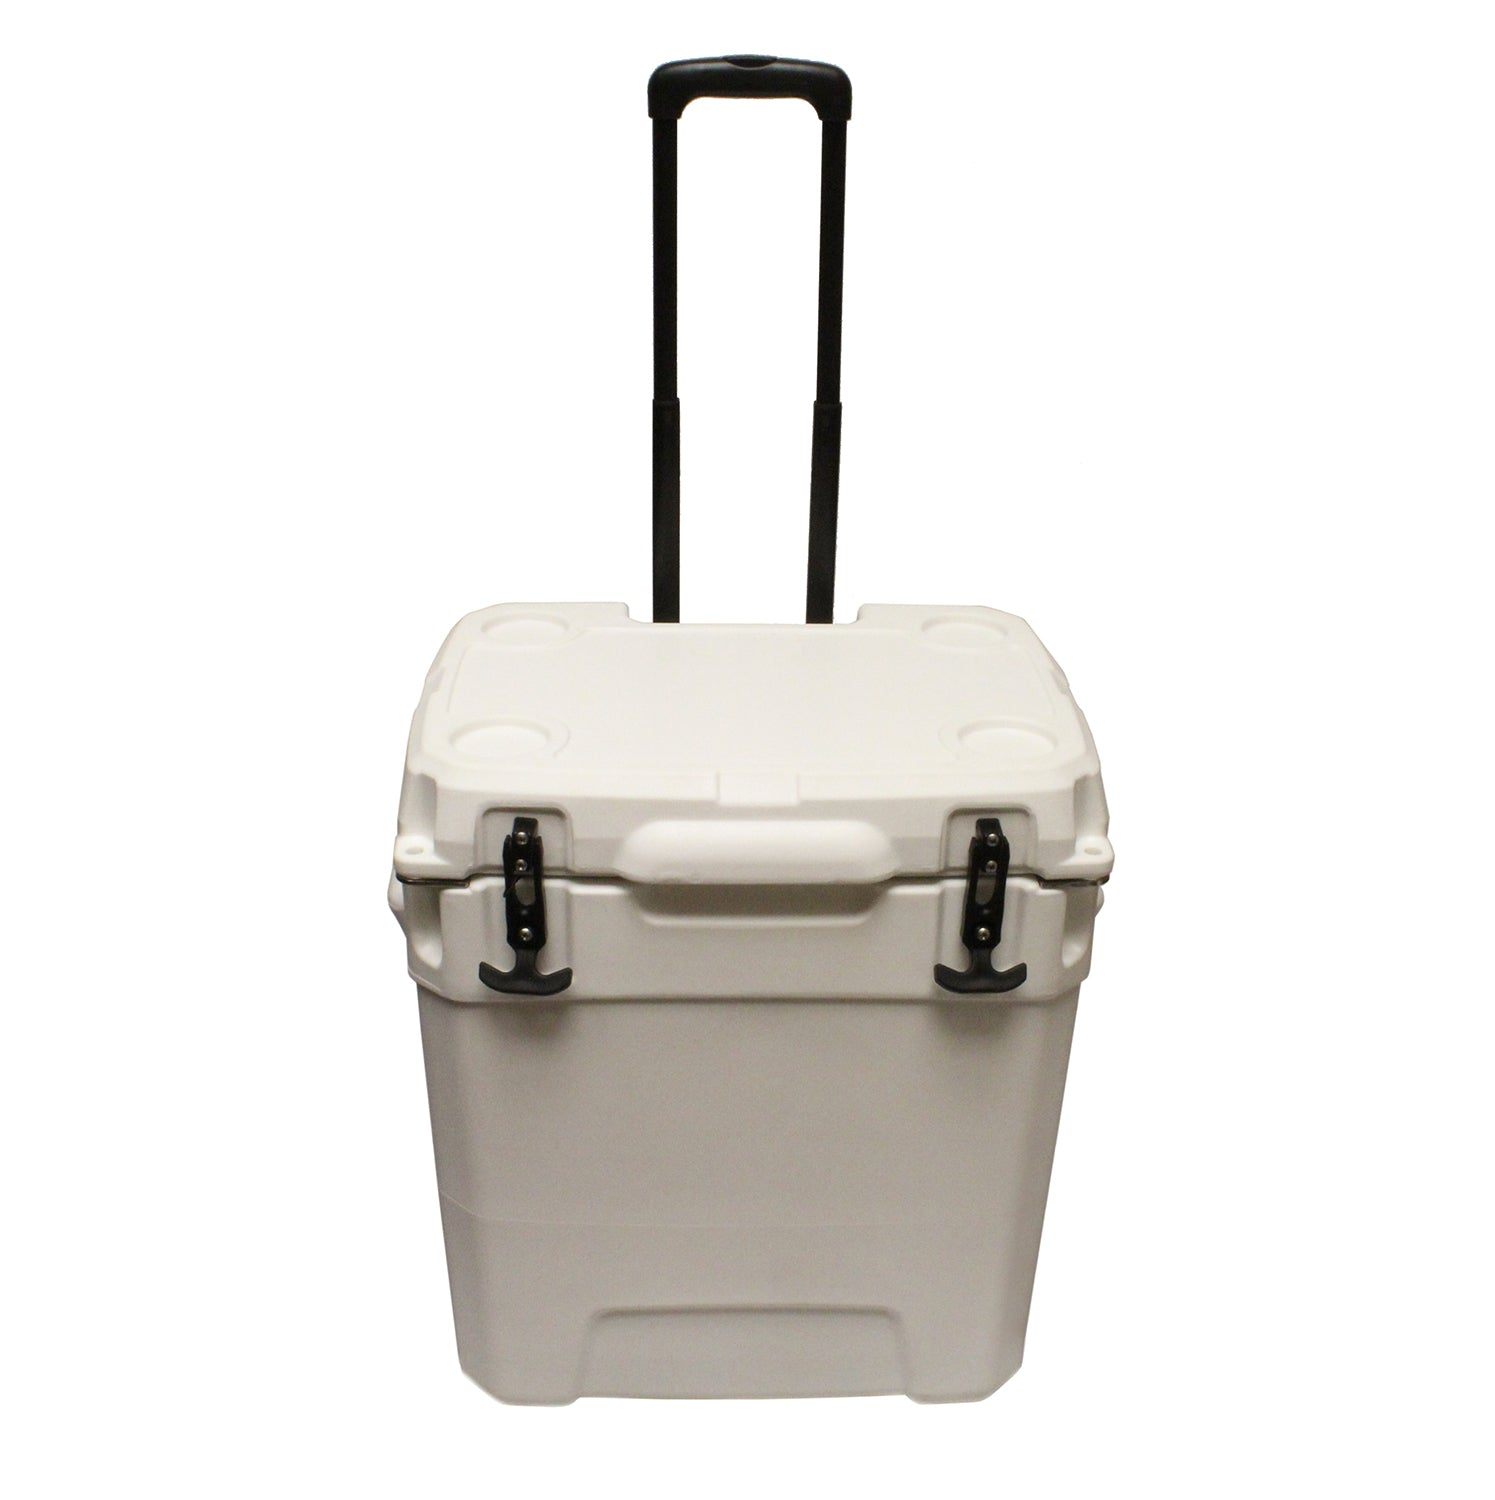 Portable Ice Chest 45 Liter Fishing & Camping Wheeled Insulated Cooler